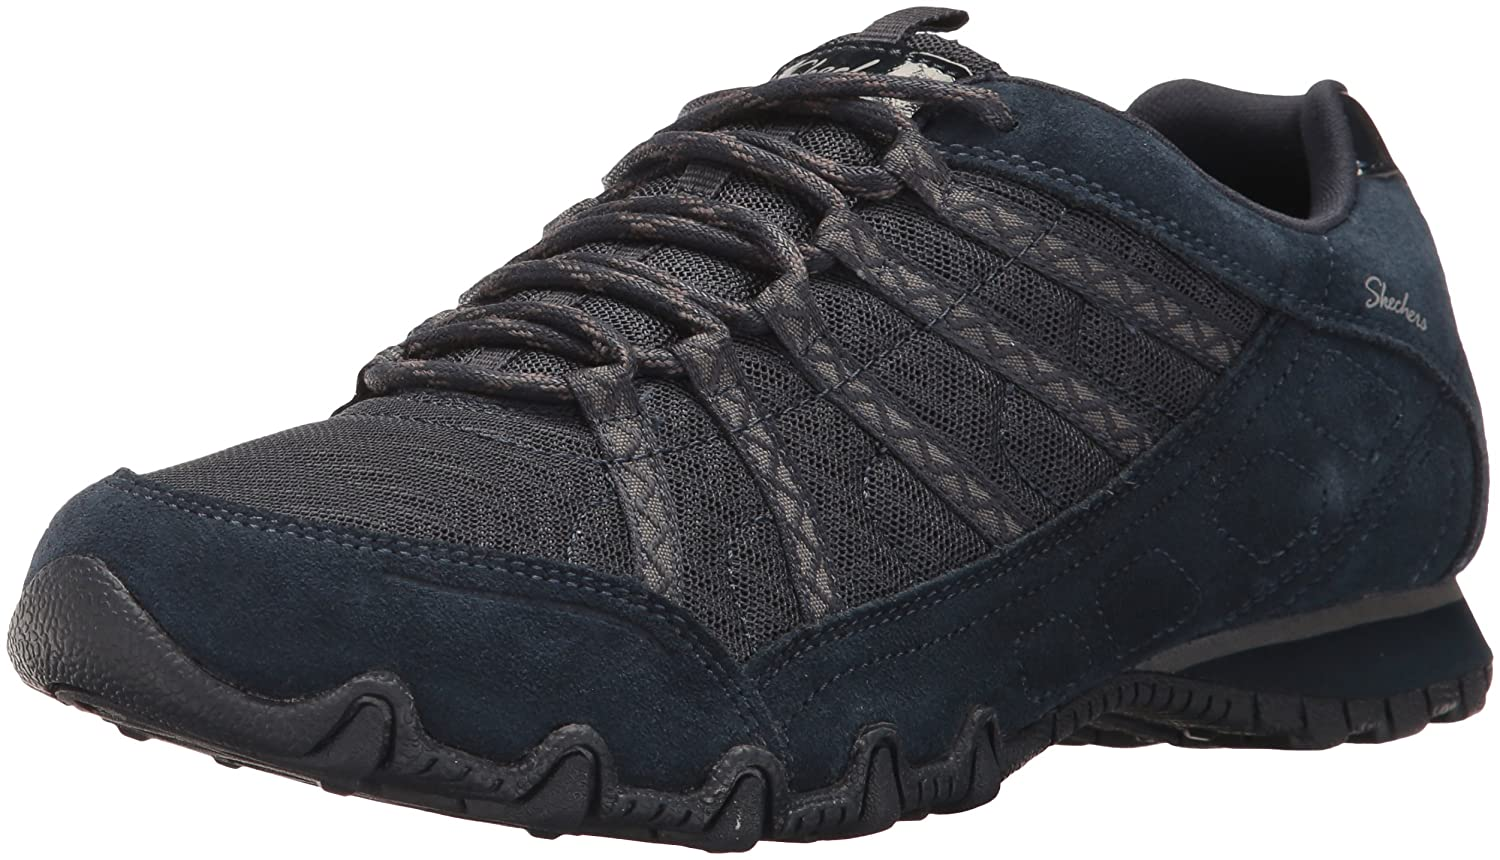 Skechers Women's Bikers-Commotion Sneaker B06ZYR61G8 5 M US|Navy